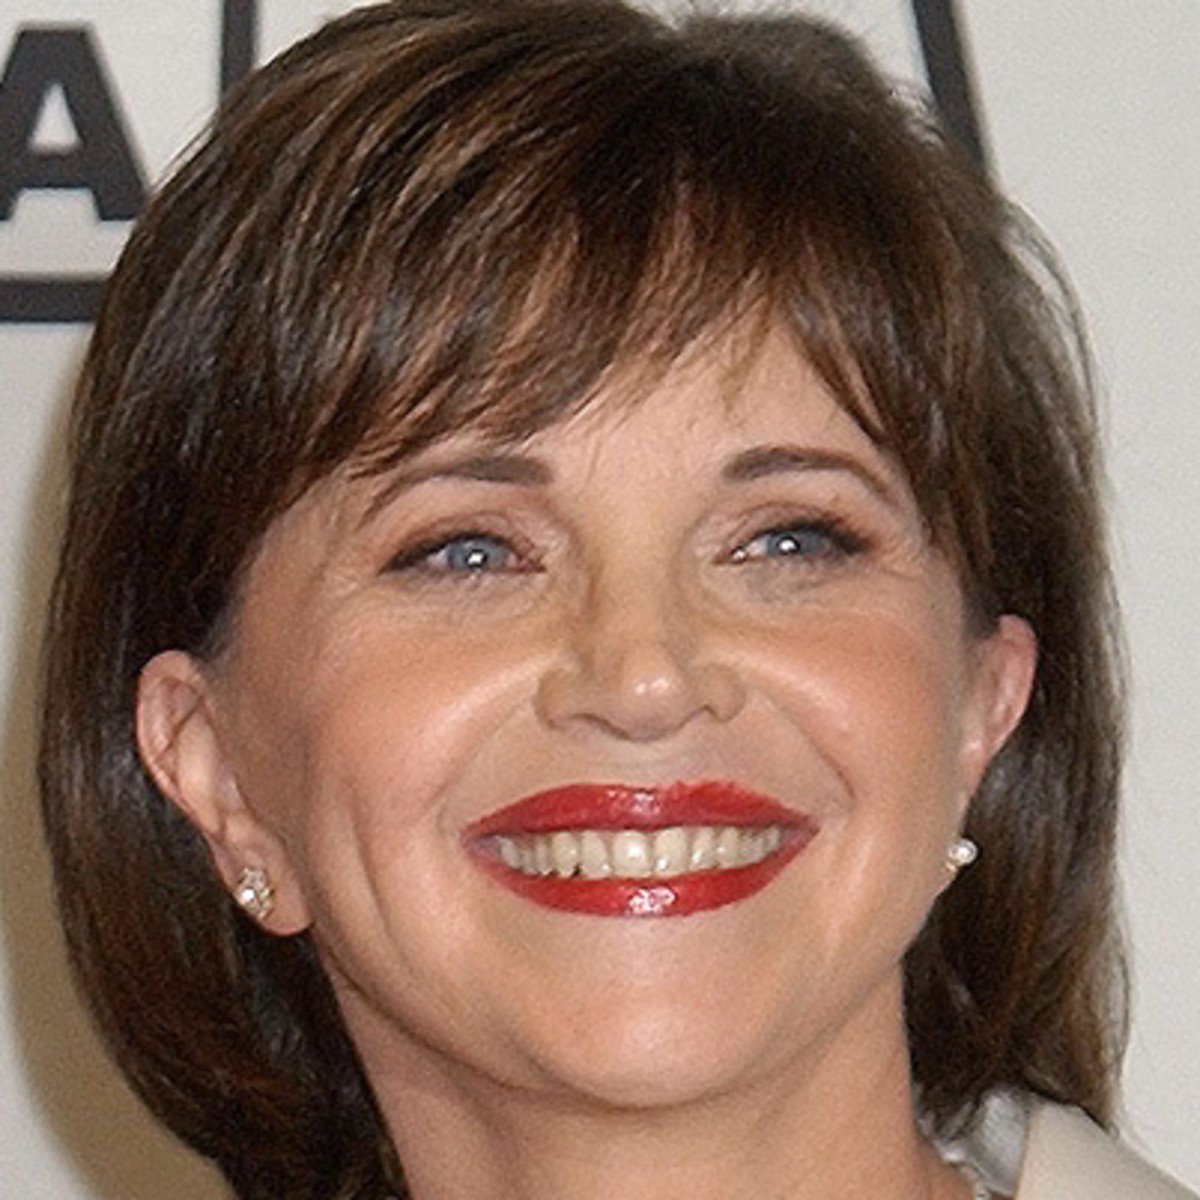 cindy williams plastic surgerycindy williams mary kay, cindy williams, cindy williams jnr, cindy williams facebook, cindy williams american graffiti, cindy williams net worth, cindy williams age, cindy williams eastenders, cindy williams today, cindy williams actress, cindy williams imdb, cindy williams husband bill hudson, cindy williams and bill hudson, cindy williams plastic surgery, cindy williams feet, cindy williams military pay, cindy williams bill hudson photos, cindy williams divorce, cindy williams commercial